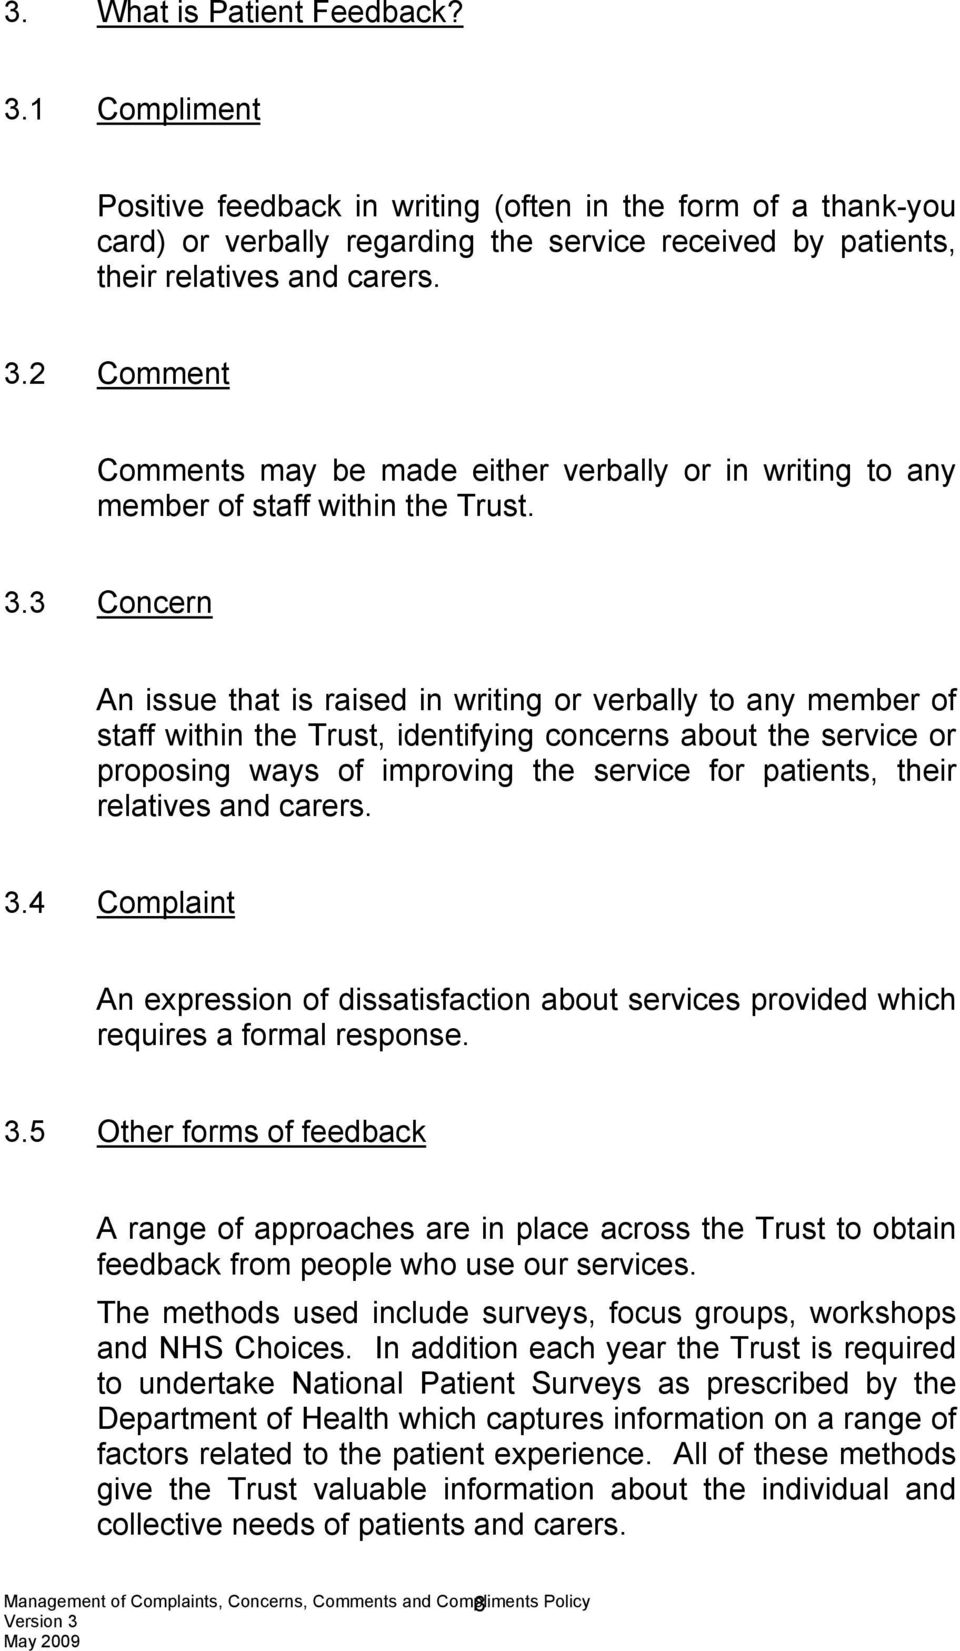 their relatives and carers. 3.4 Complaint An expression of dissatisfaction about services provided which requires a formal response. 3.5 Other forms of feedback A range of approaches are in place across the Trust to obtain feedback from people who use our services.